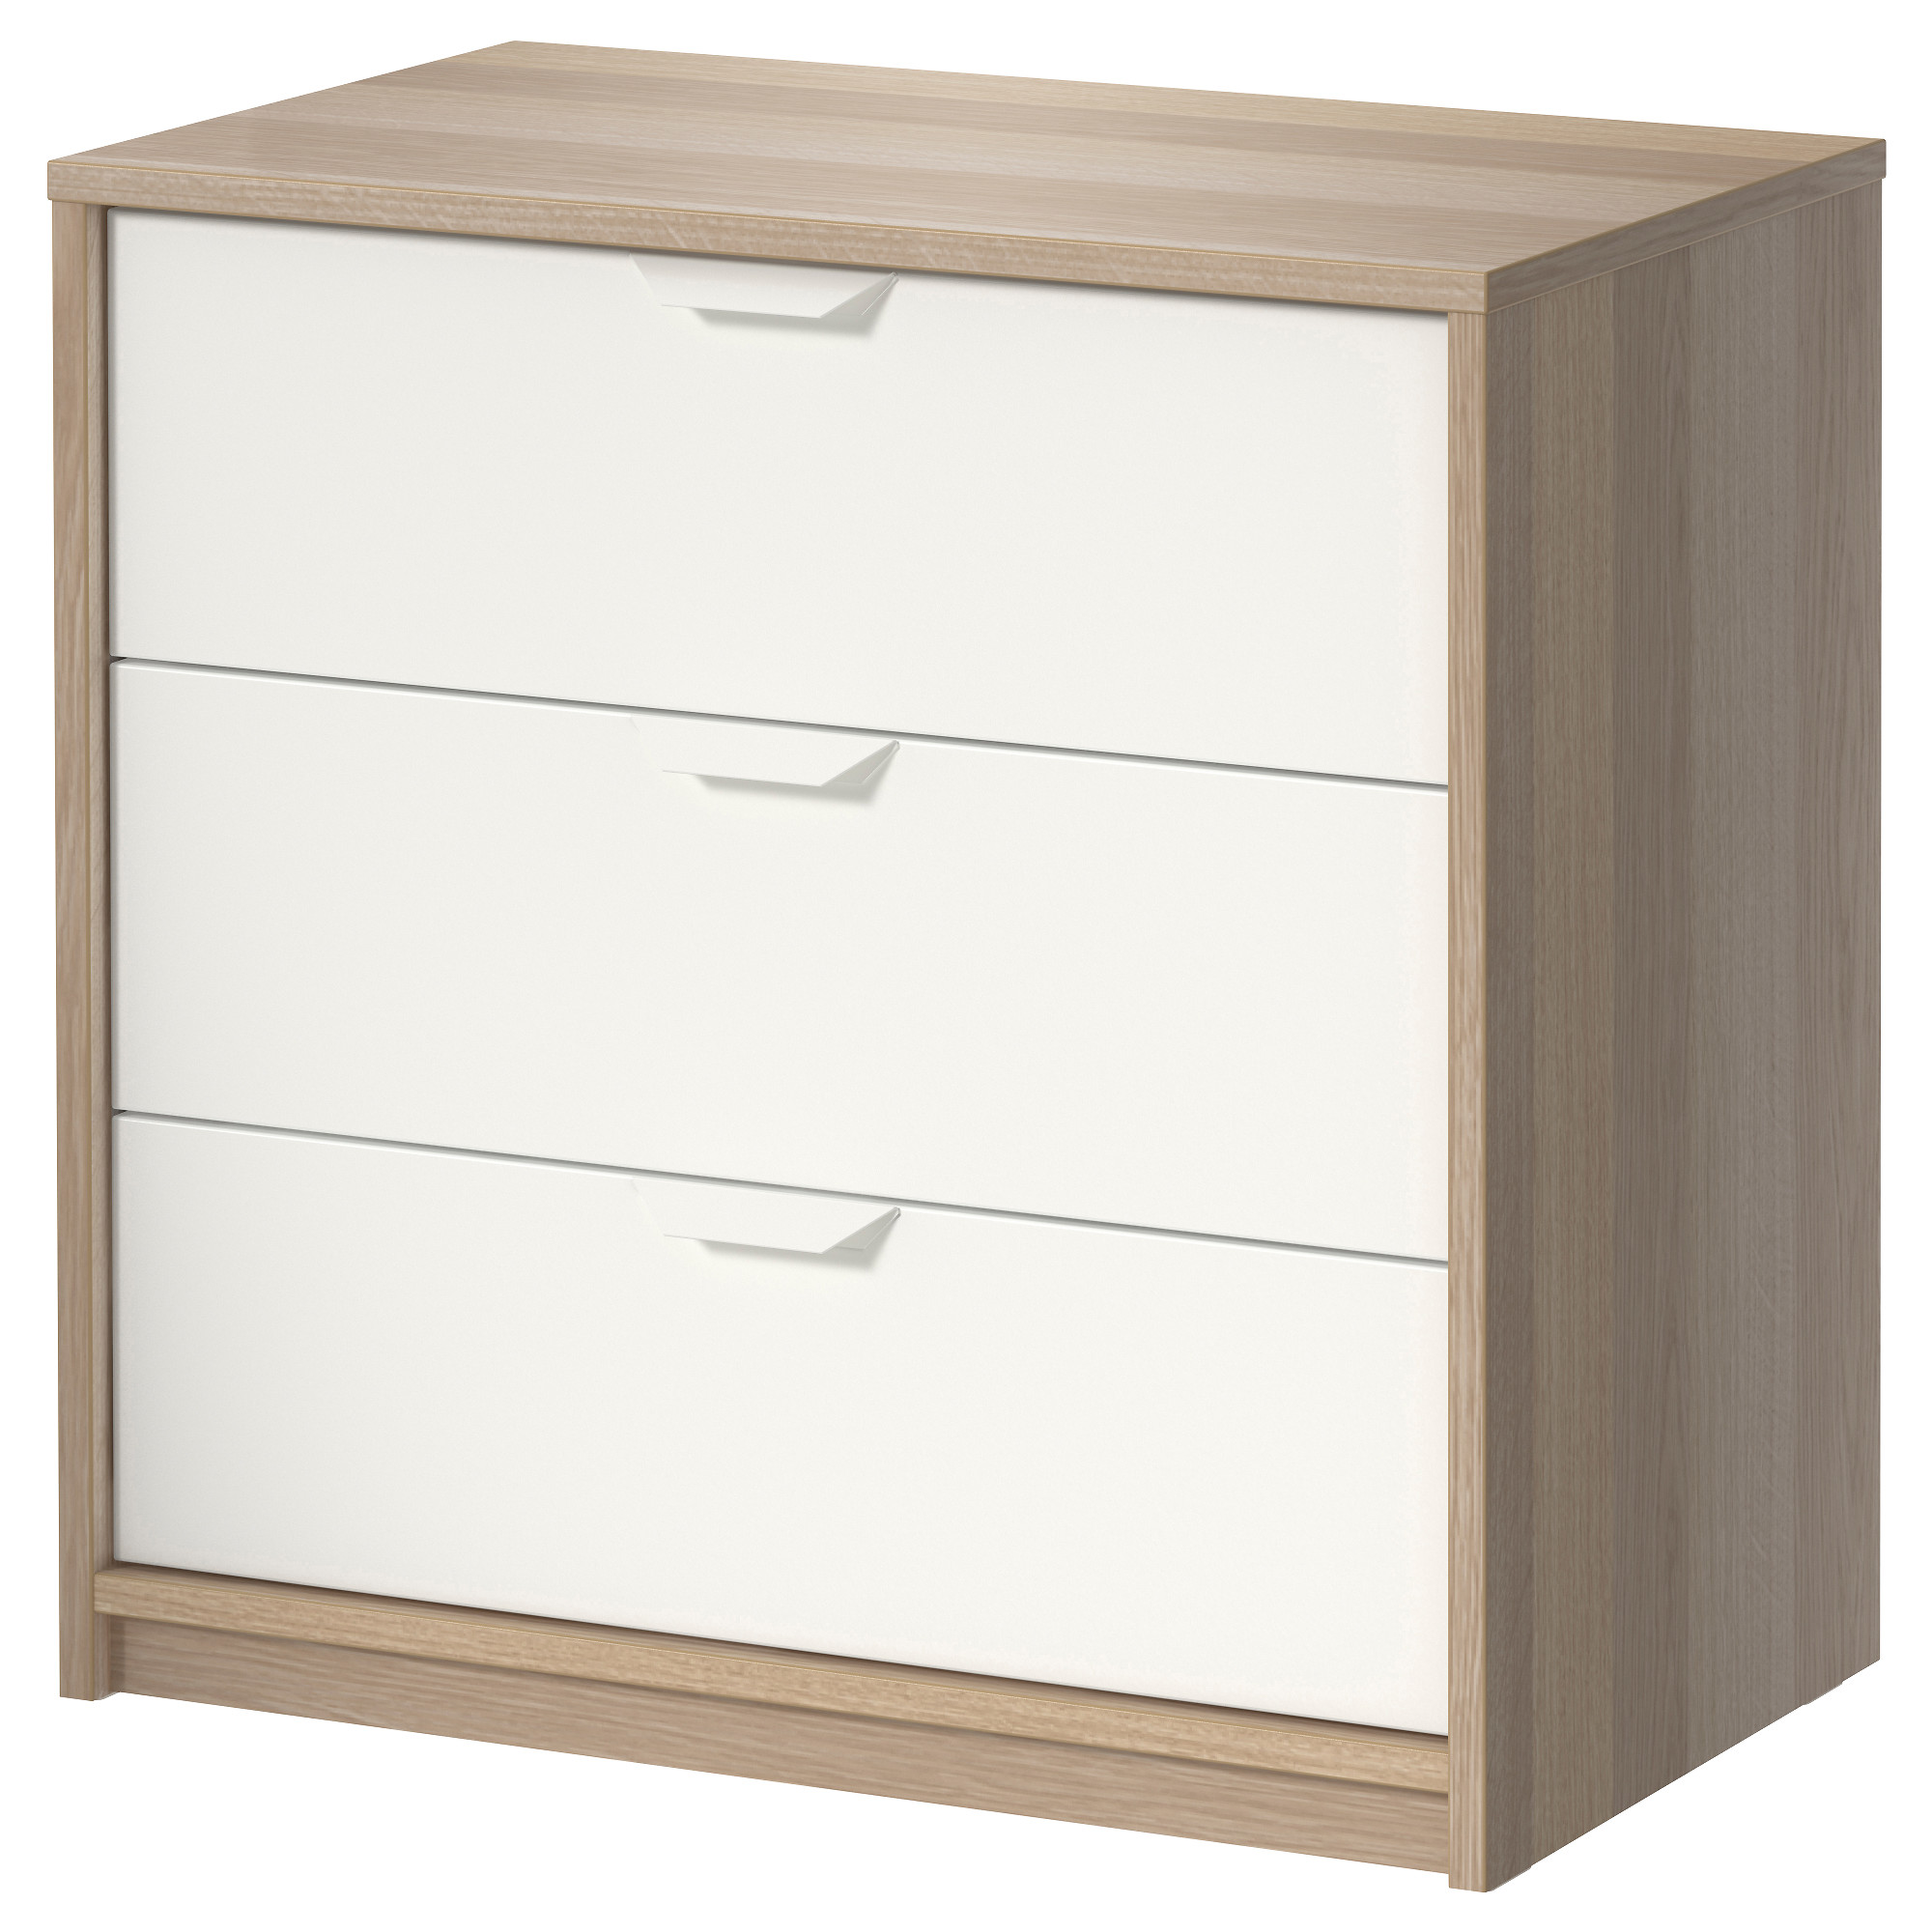 Ikea Malm Dresser 3 Drawer dressers - chests of drawers - ikea